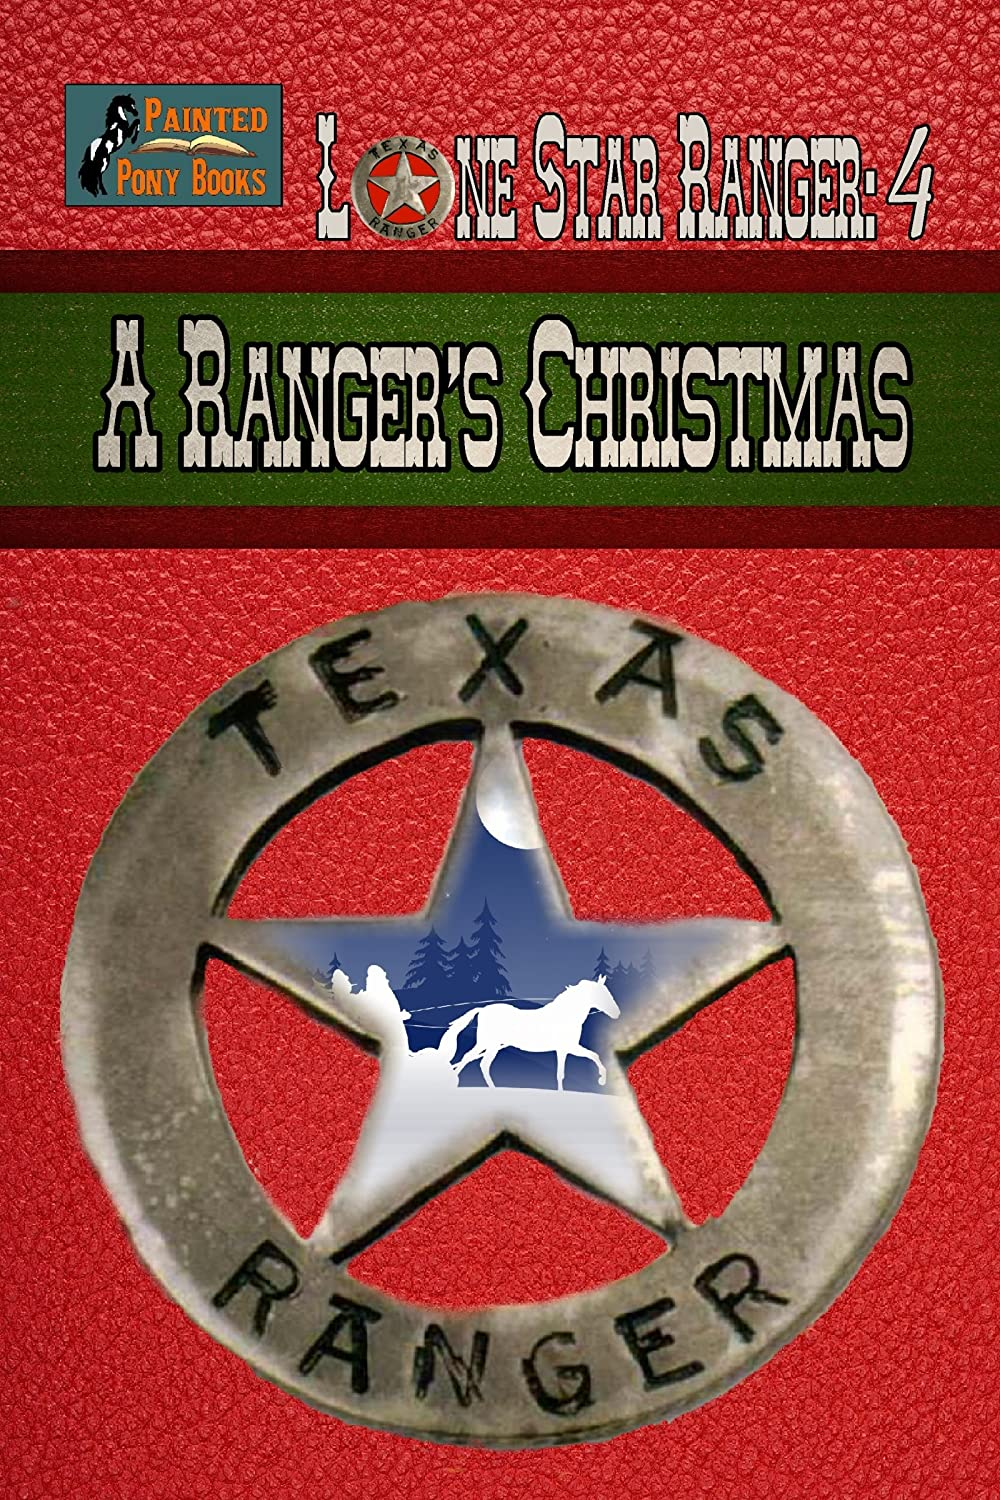 Lone Star Ranger 4 cover